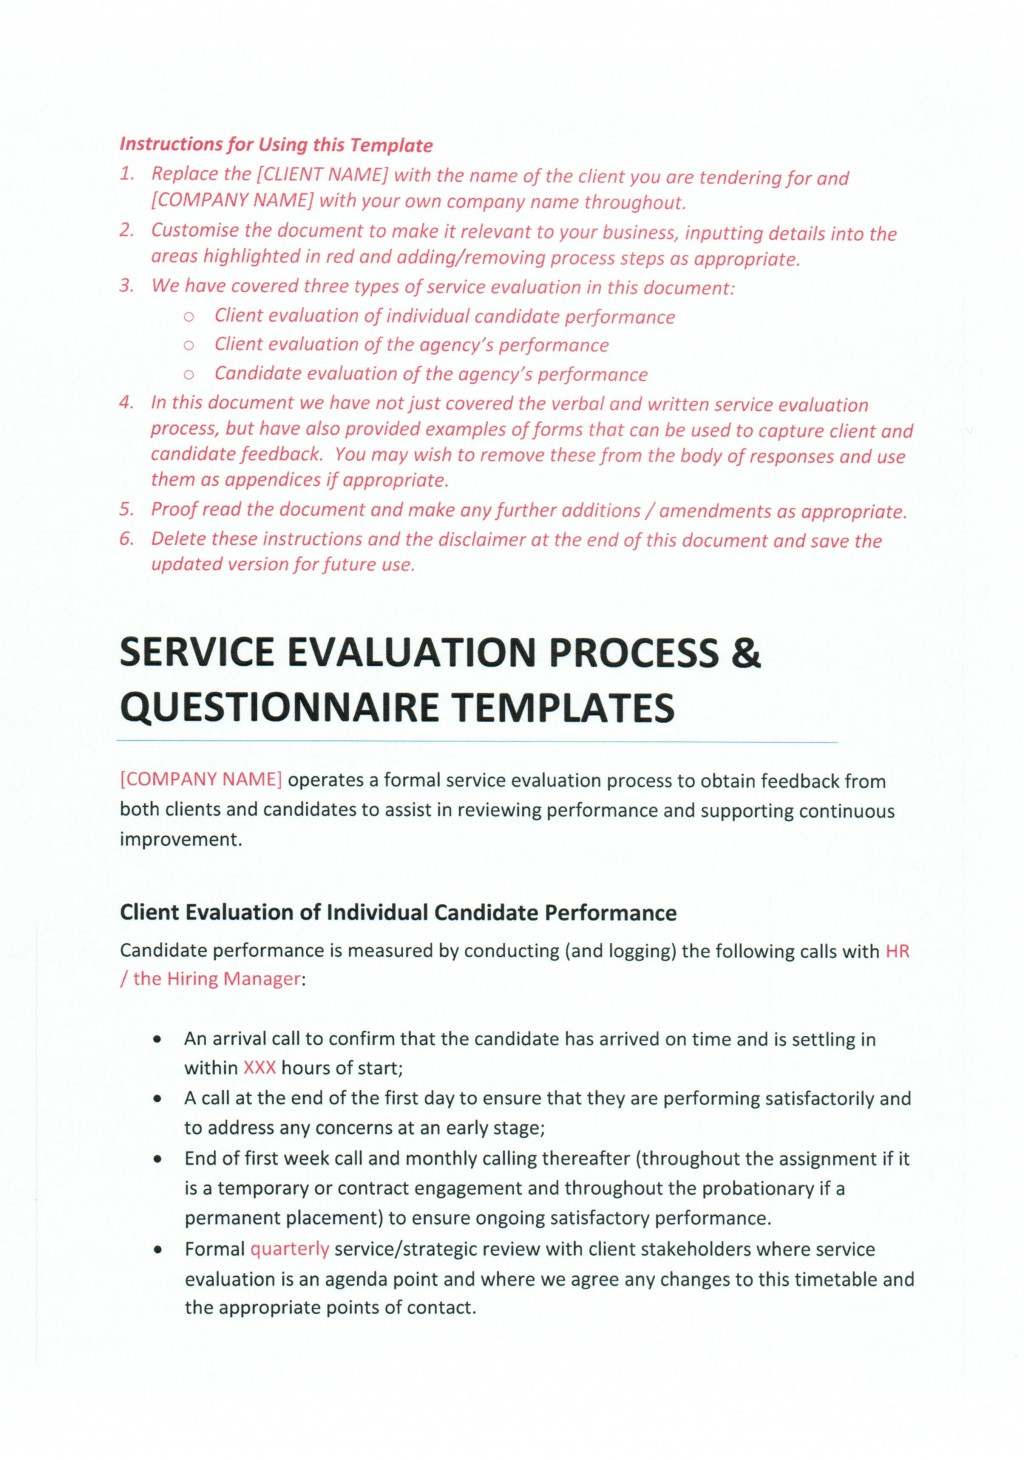 004 Health Care Essay Serviceevaluation Impressive Universal Introduction Assignment Cost Access And Quality In English Large